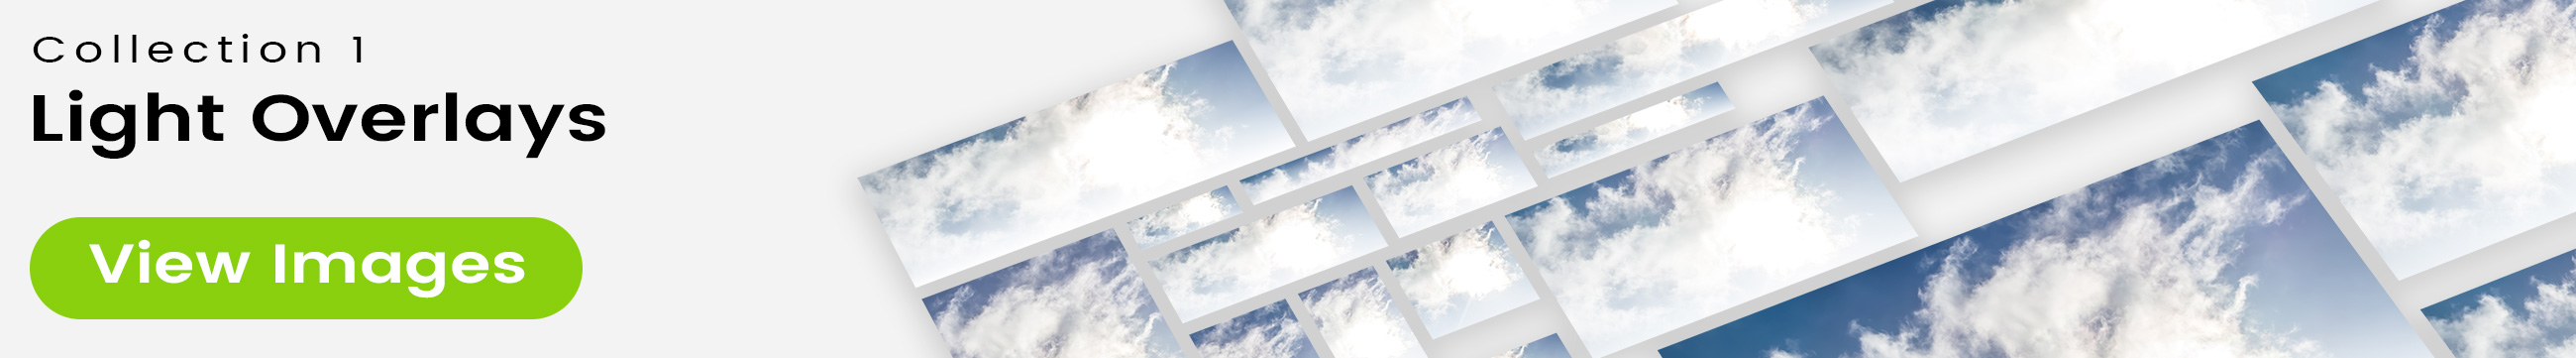 See 25 bonus images included with clouds stock image 9467. Collection 1 of 4 features a light overlay design.